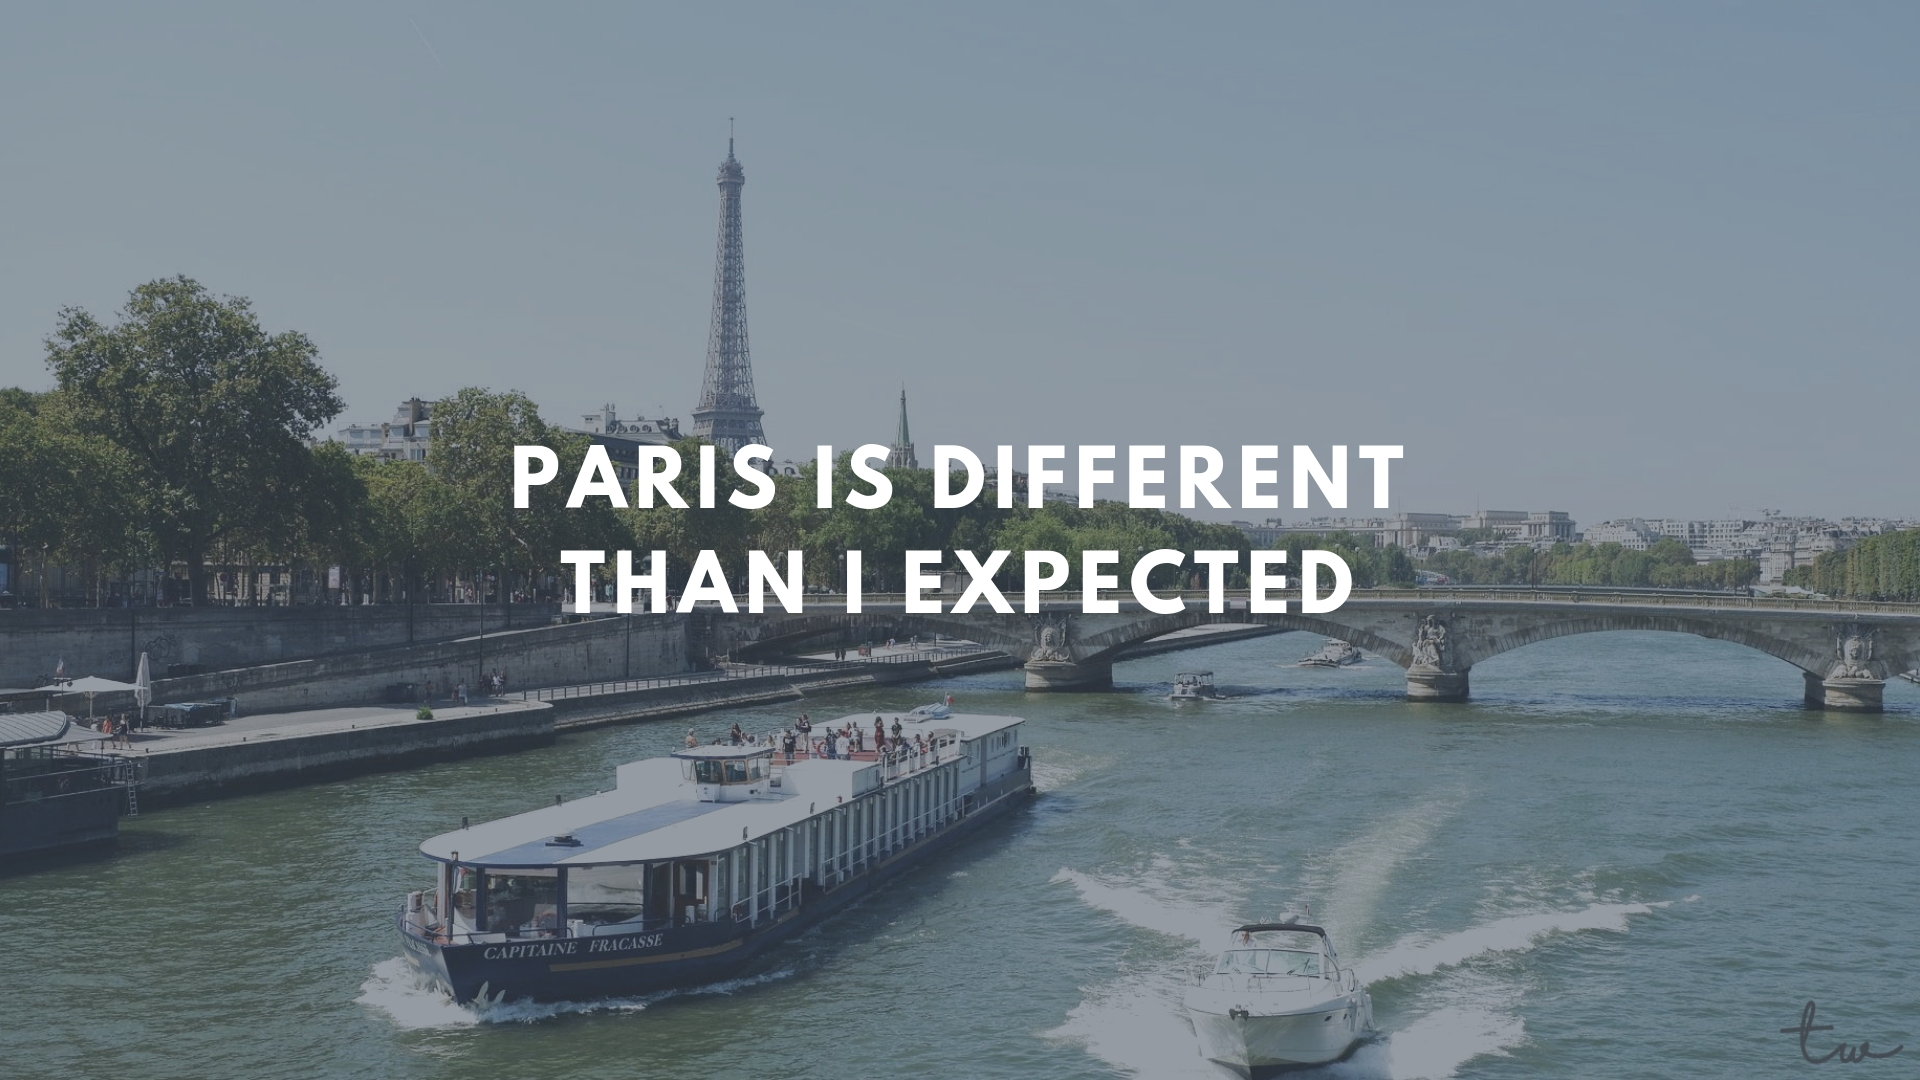 PARIS IS DIFFERENTTHAN I EXPECTED